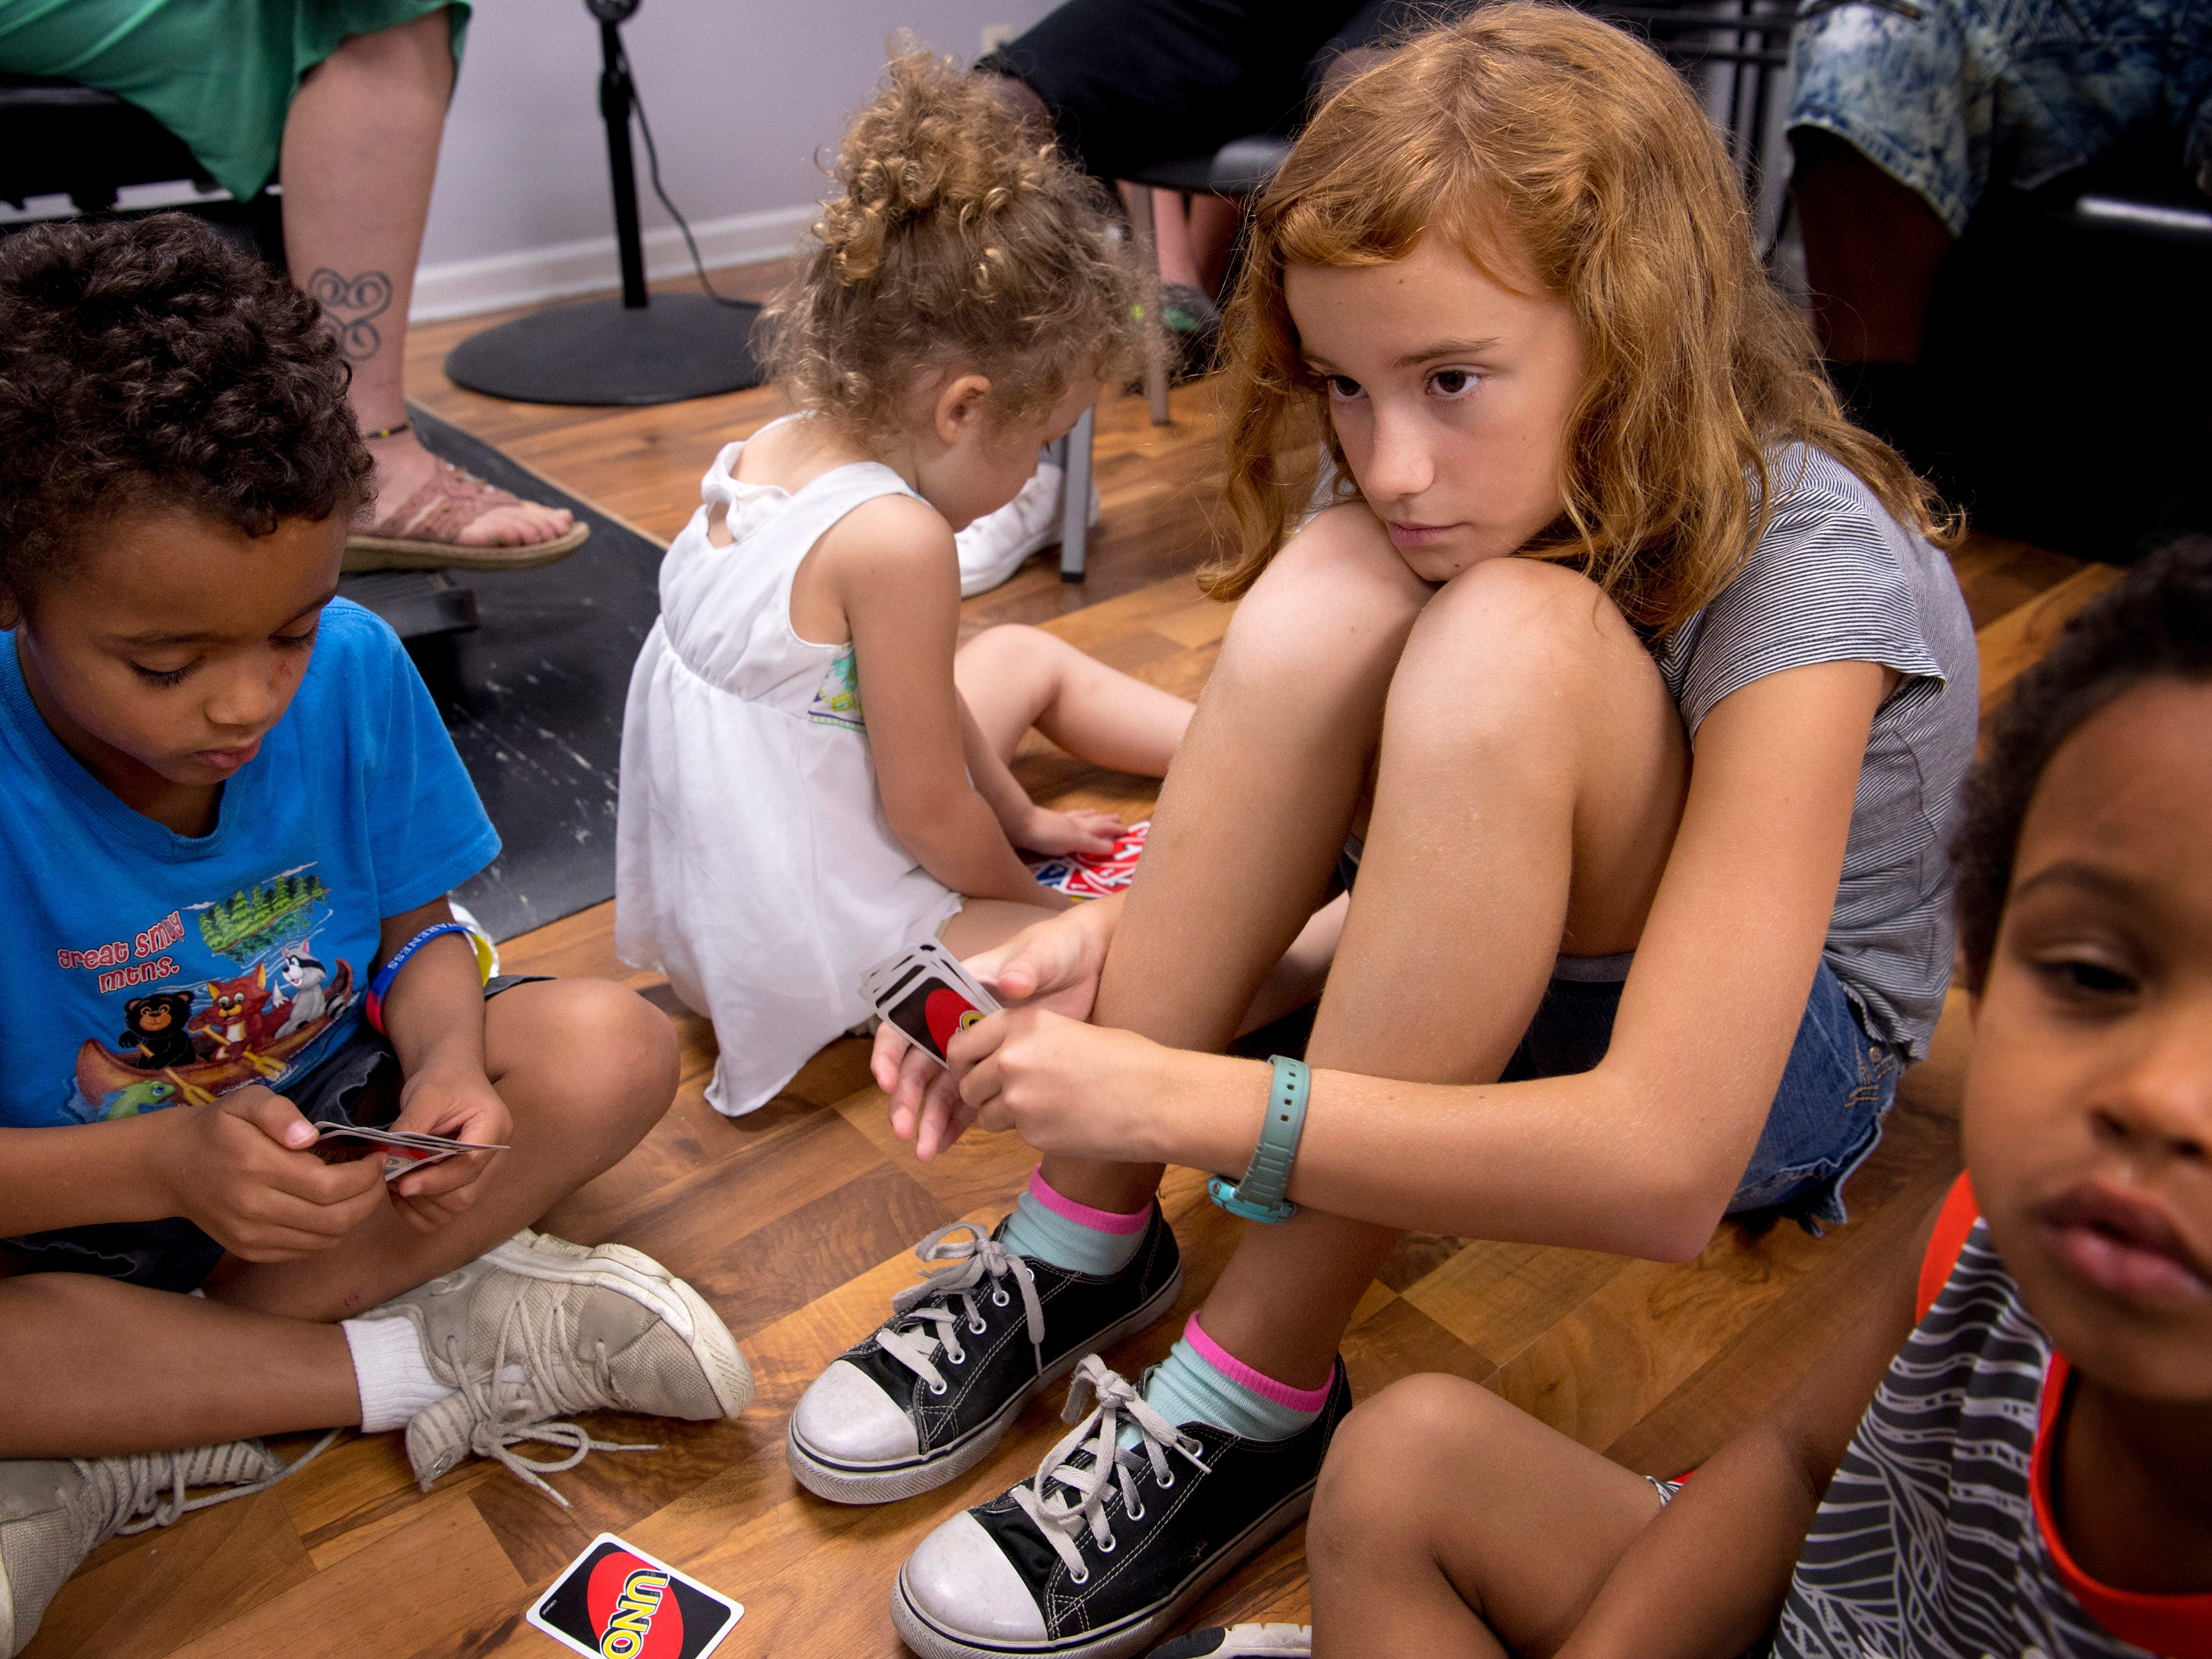 Layla Whitepeacock, 11, right, waits for her opponent, Cassius Thomas, 6, left, to make a play during their game of Uno at Jerald's Barbershop Monday morning. The kids were waiting for their turns for free back-to-school haircuts.